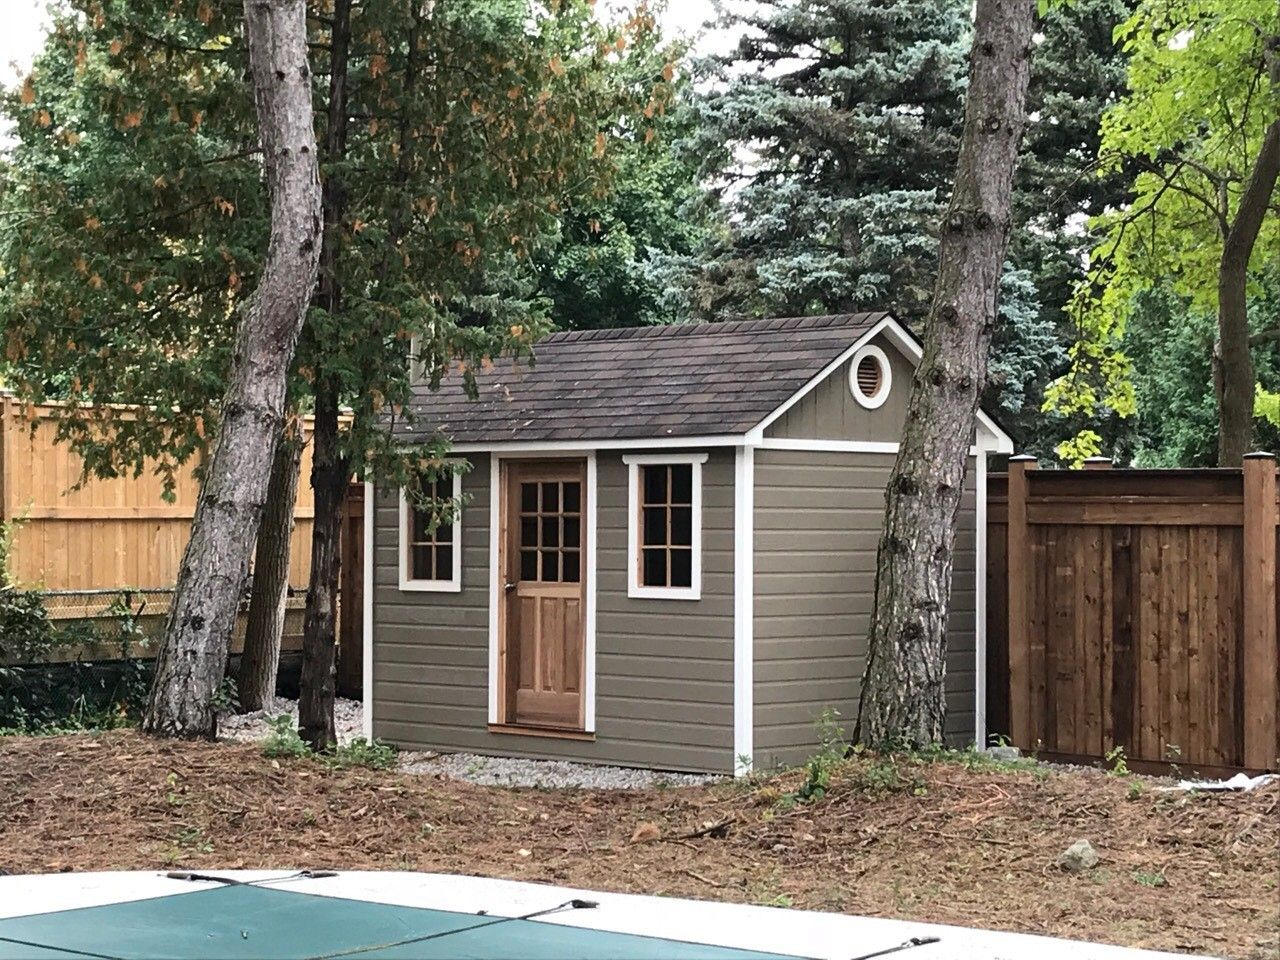 8 X 12 Palmerston Garden Shed In Thornhill Ontario 232124 Garden Shed Shed Small Wood Shed